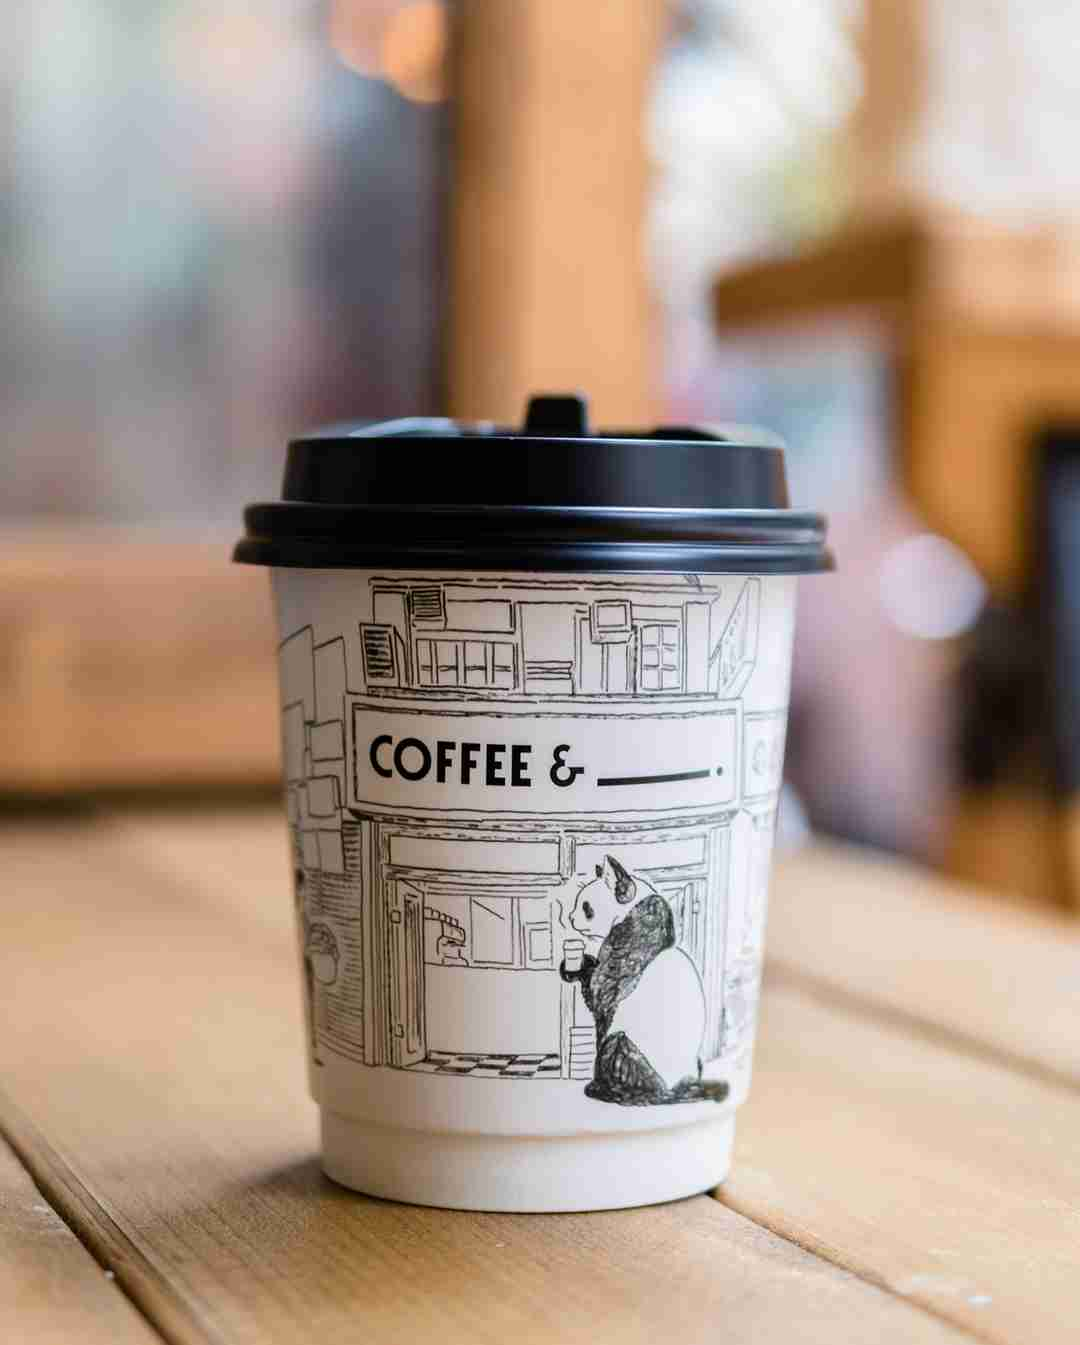 Coffee benefits cognition